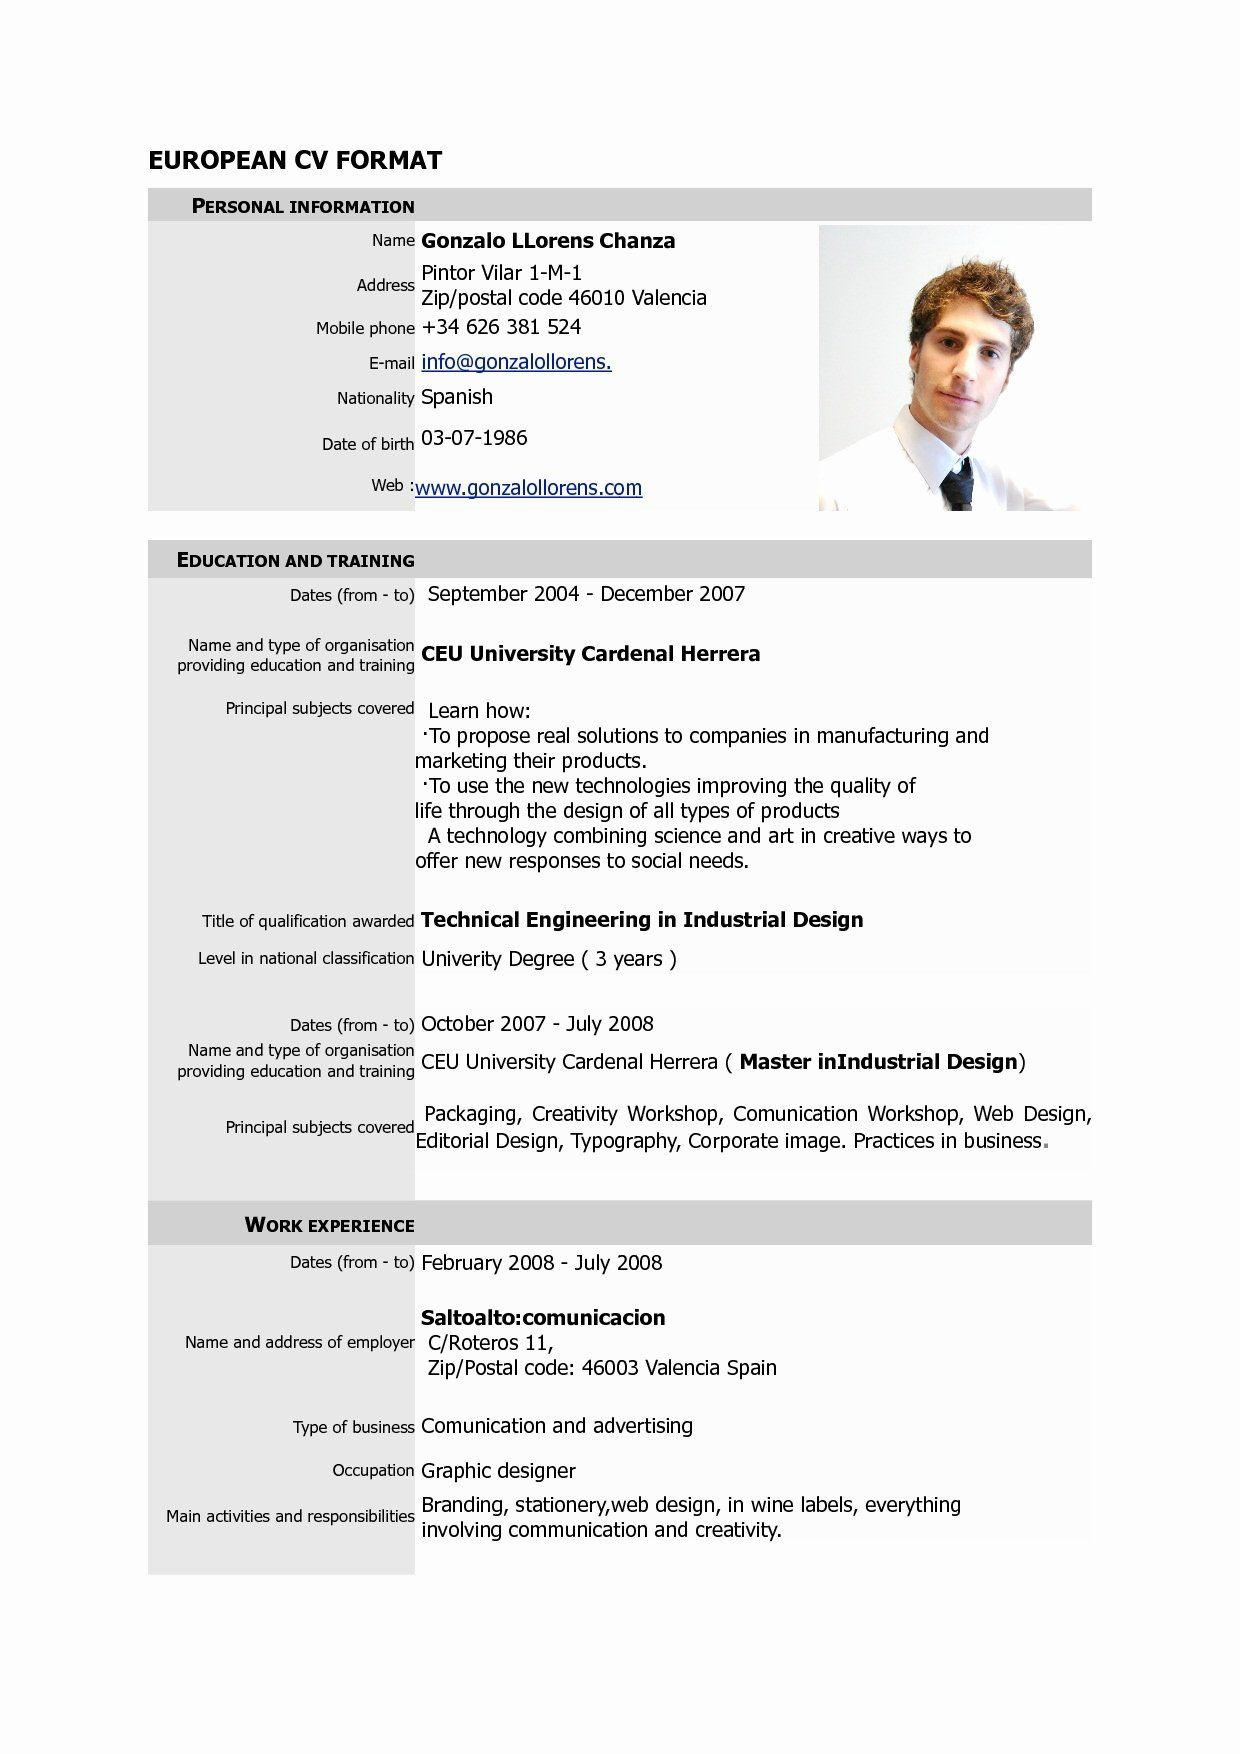 free resume templates pdf best of cv format planner template for job bio data marriage Resume Canadian Resume Template Free